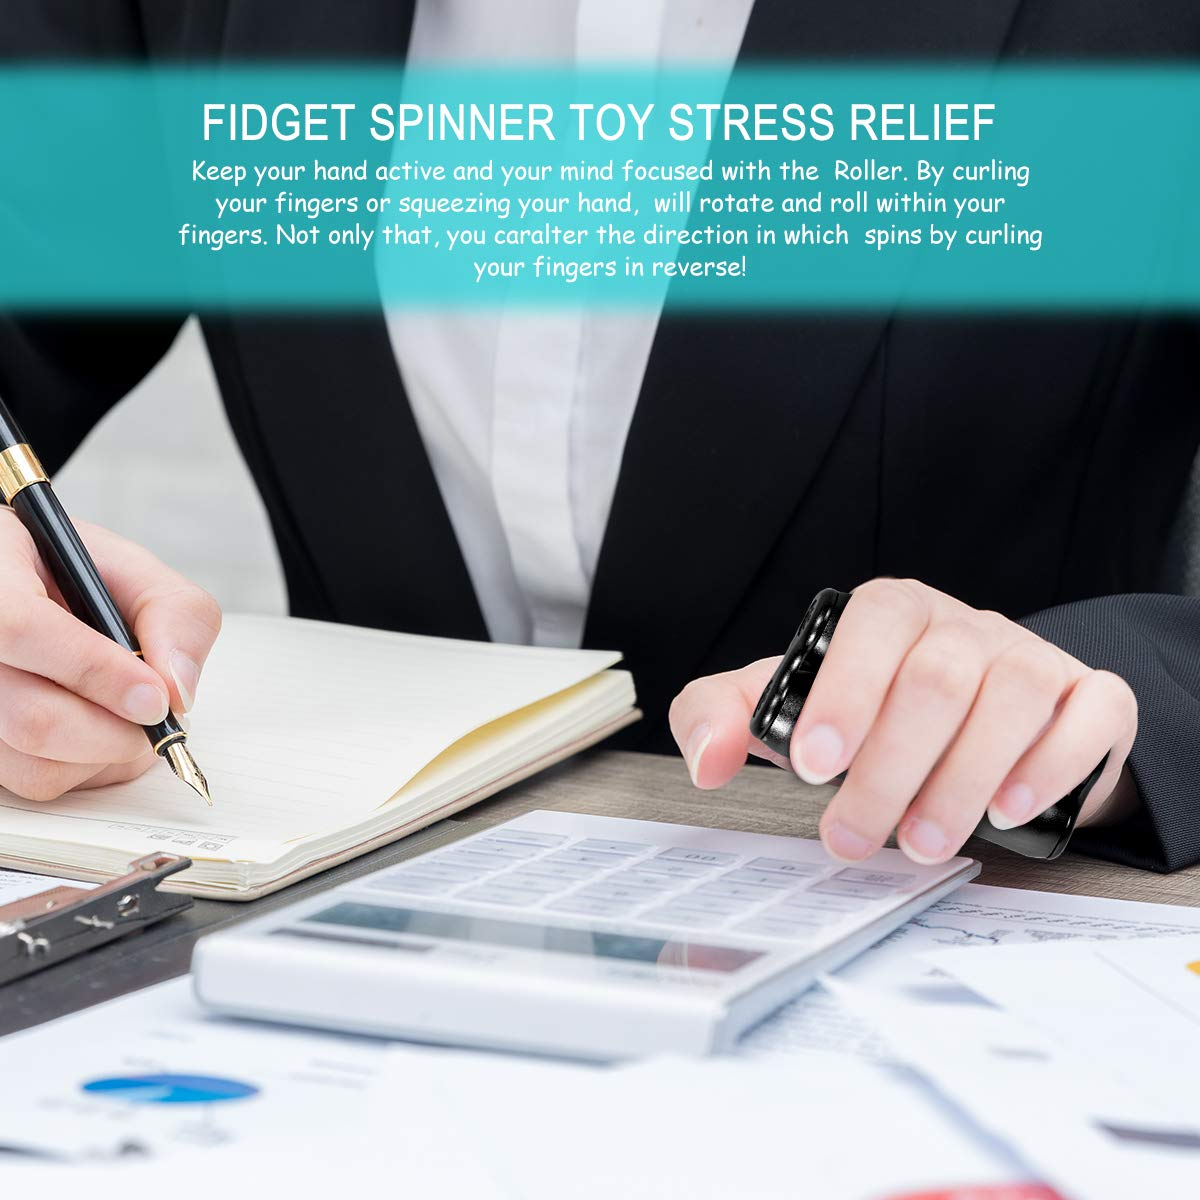 MuD-A Anti-Anxiety Toys,Handheld Fidget Toy for Adults,Relieving Stress Boredom ADHD Autism,Easy to Carry and Use (Black) by MuD-A (Image #6)